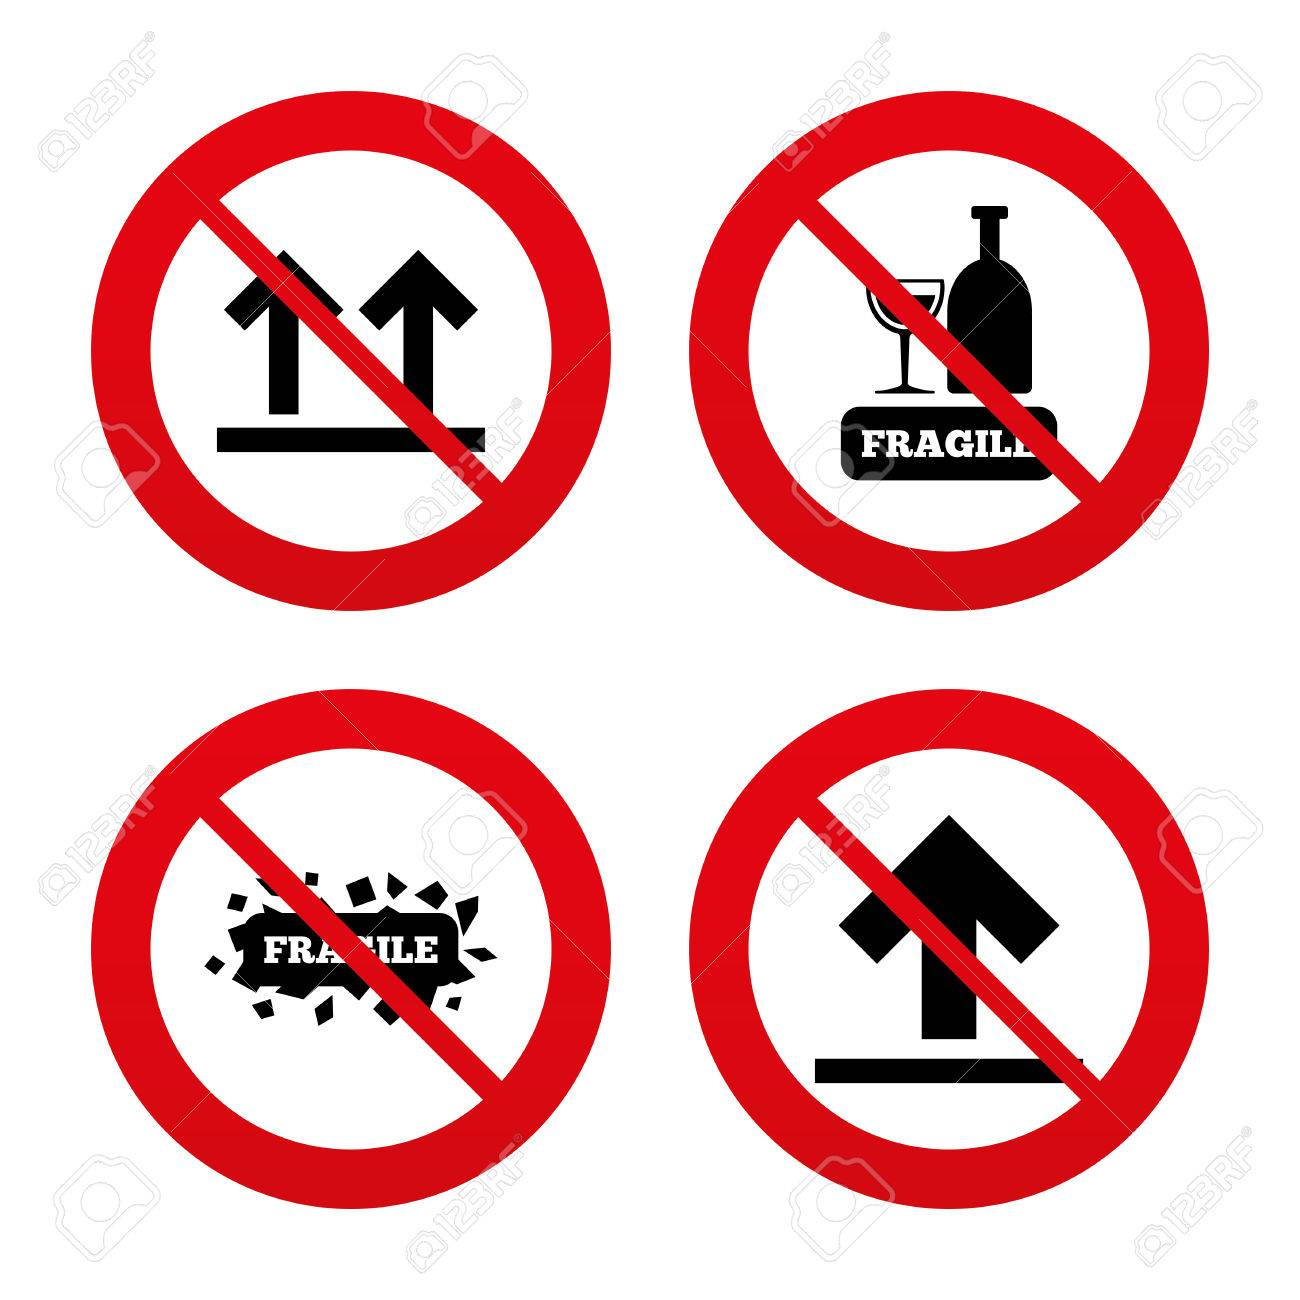 No Ban Or Stop Signs Fragile Icons Delicate Package Delivery